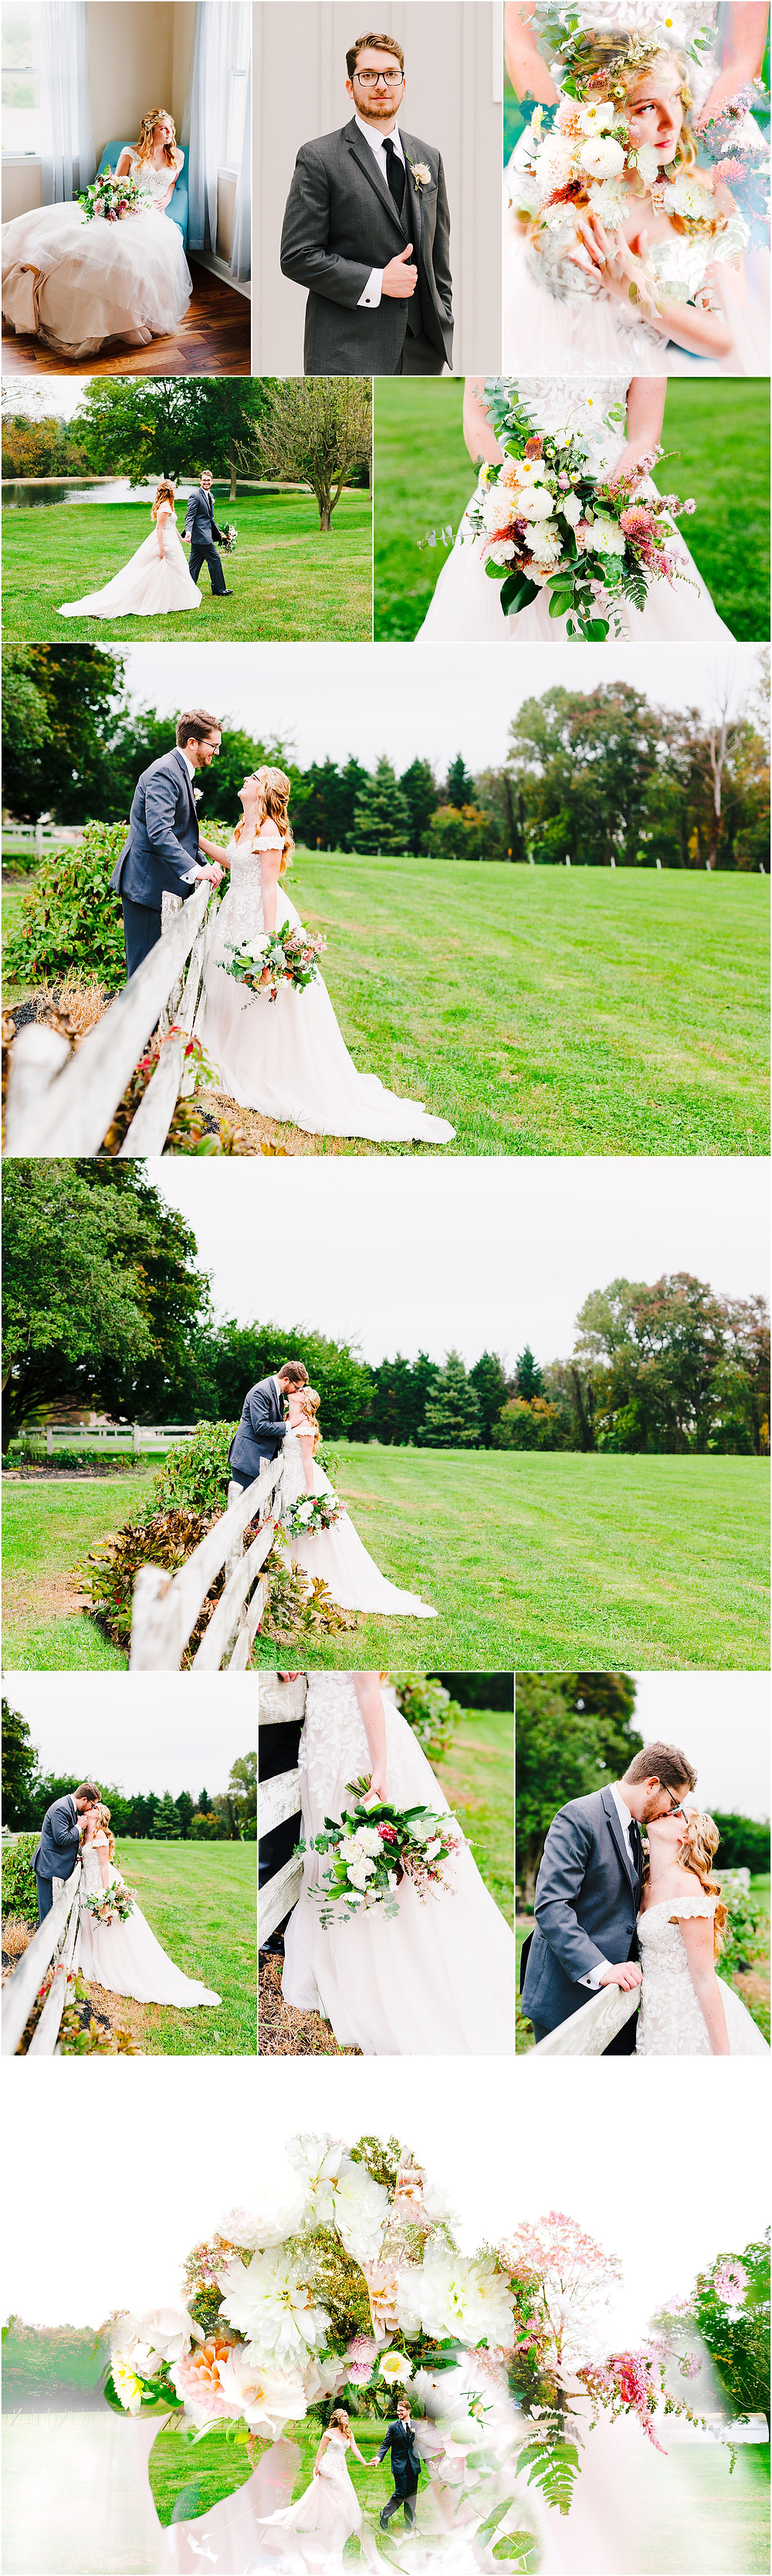 Romantic Portraits at Rosewood Farms by Maryland Wedding Photographer